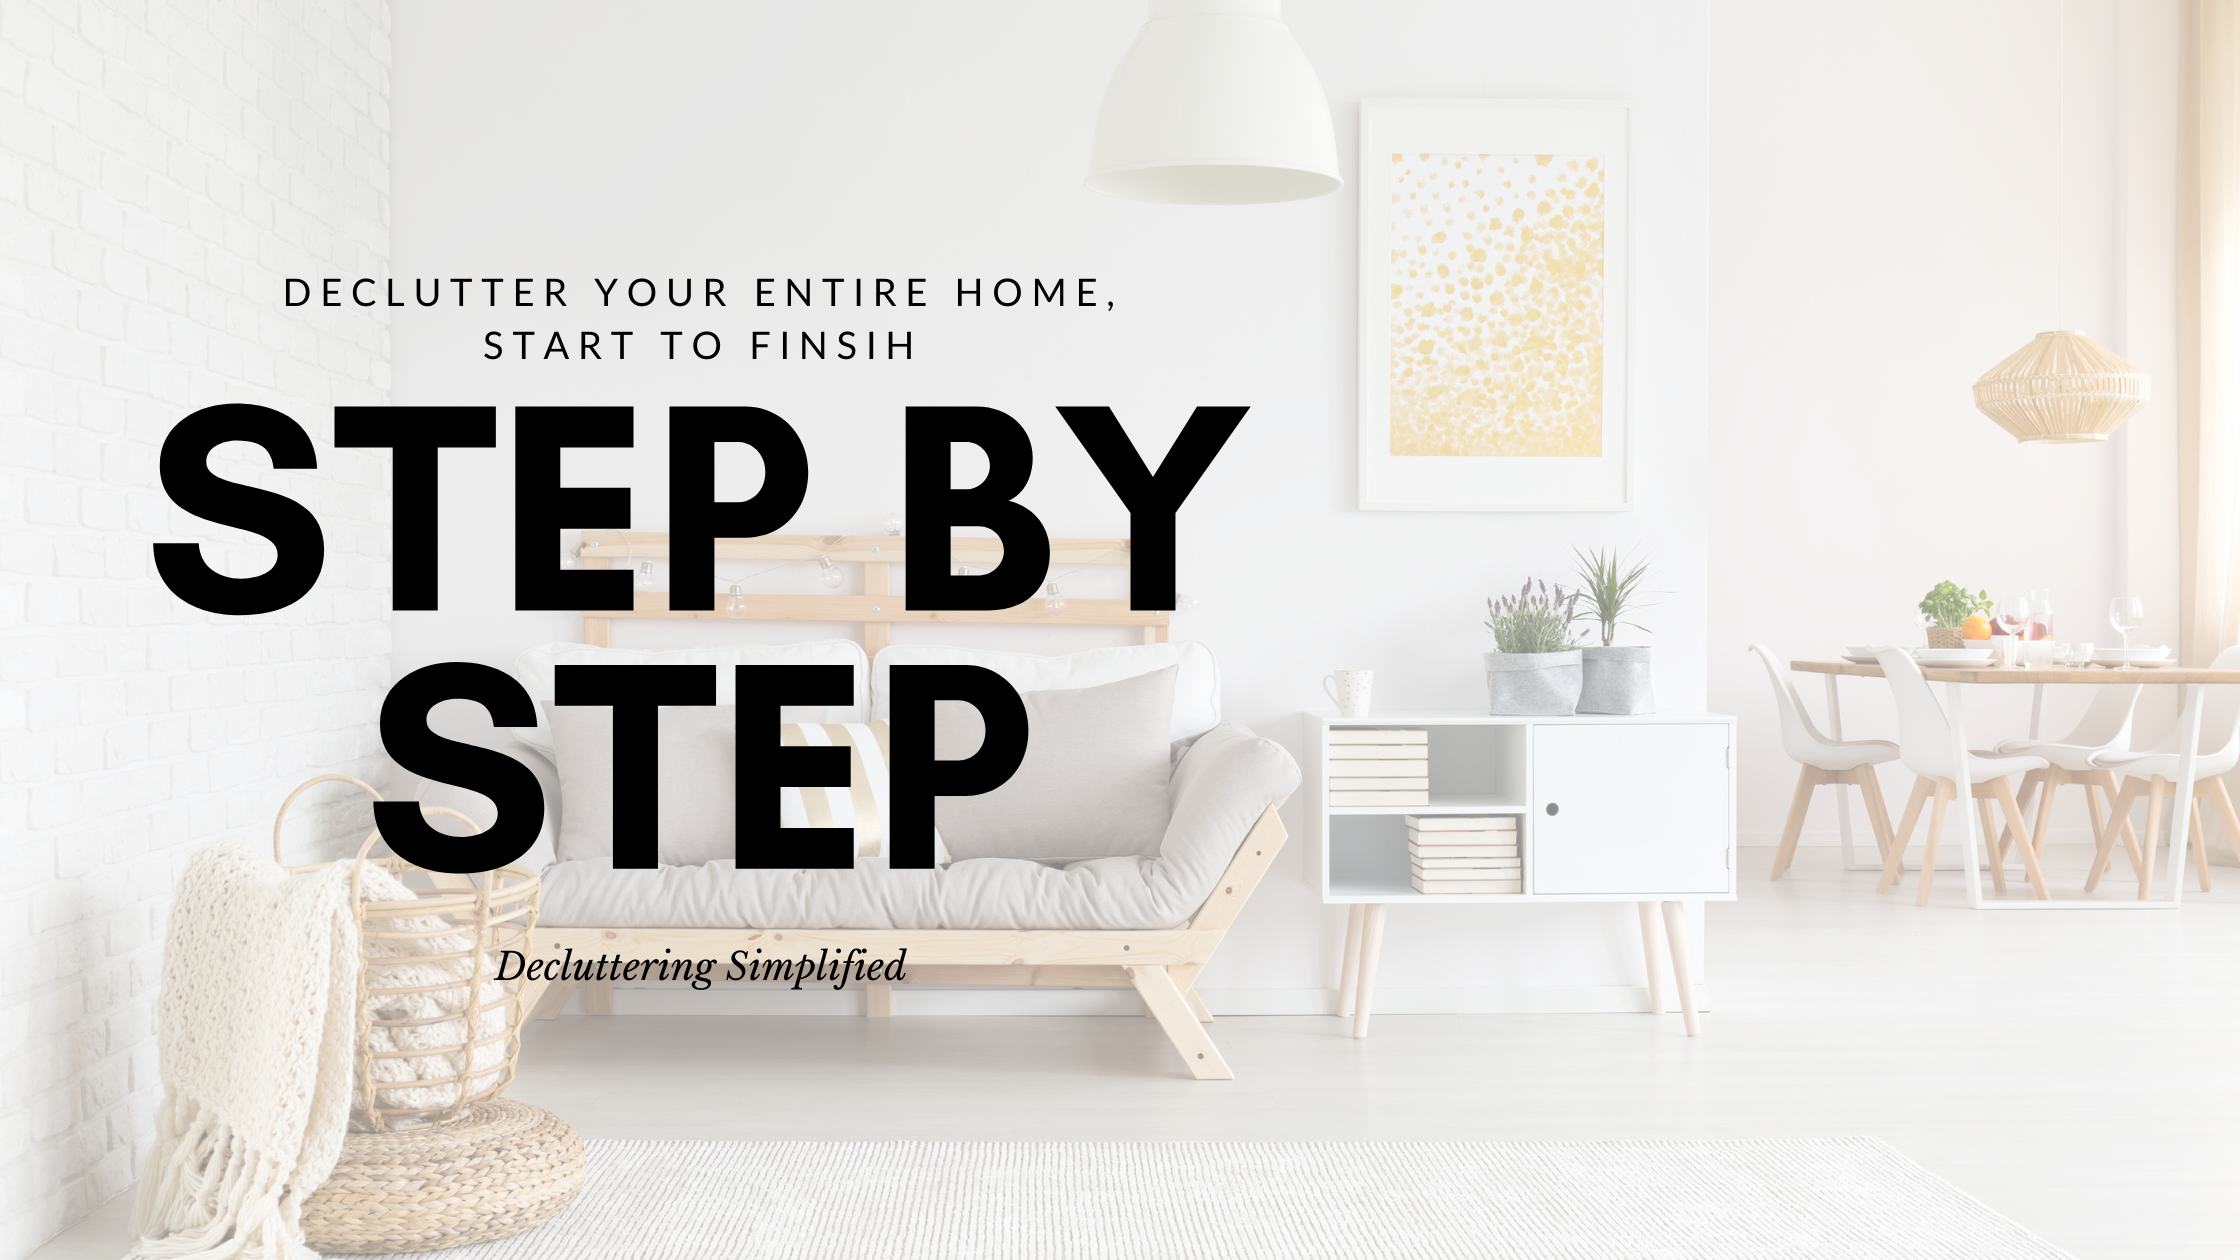 """A photo of a simple, clean living room with a gray sofa and end table with plants on it. The overlayed text reads """"declutter your entire home, step by step with Decluttering Simplified"""""""